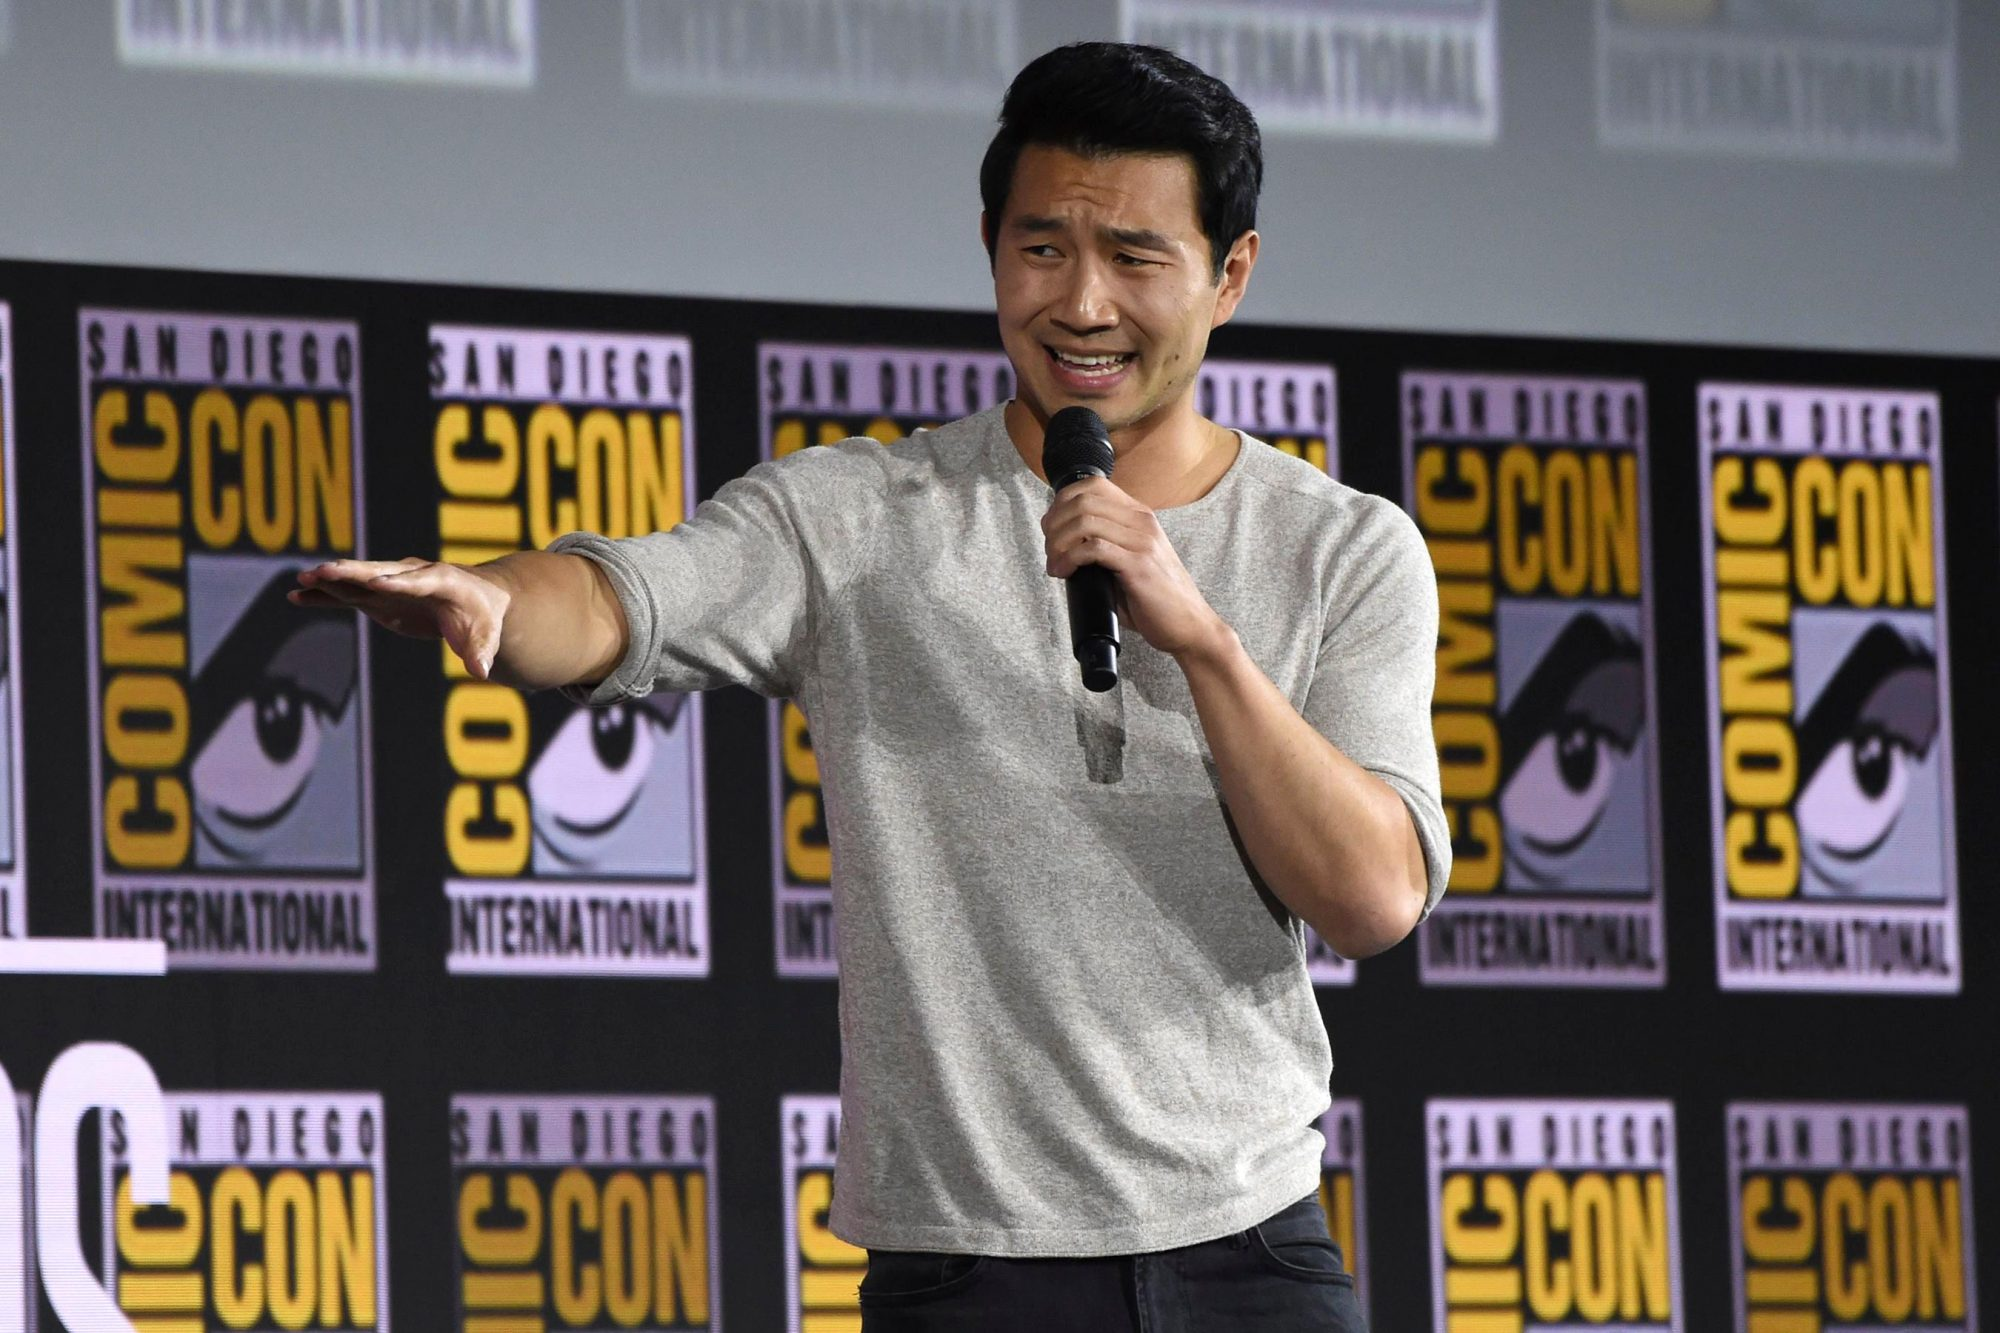 """Mandatory Credit: Photo by Chris Pizzello/Invision/AP/Shutterstock (10342701af) Simu Liu speaks during the """"Shang-Chi and The Legend of the Ten Rings"""" portion of the Marvel Studios panel on day three of Comic-Con International, in San Diego 2019 Comic-Con - Marvel Studios, San Diego, USA - 20 Jul 2019"""